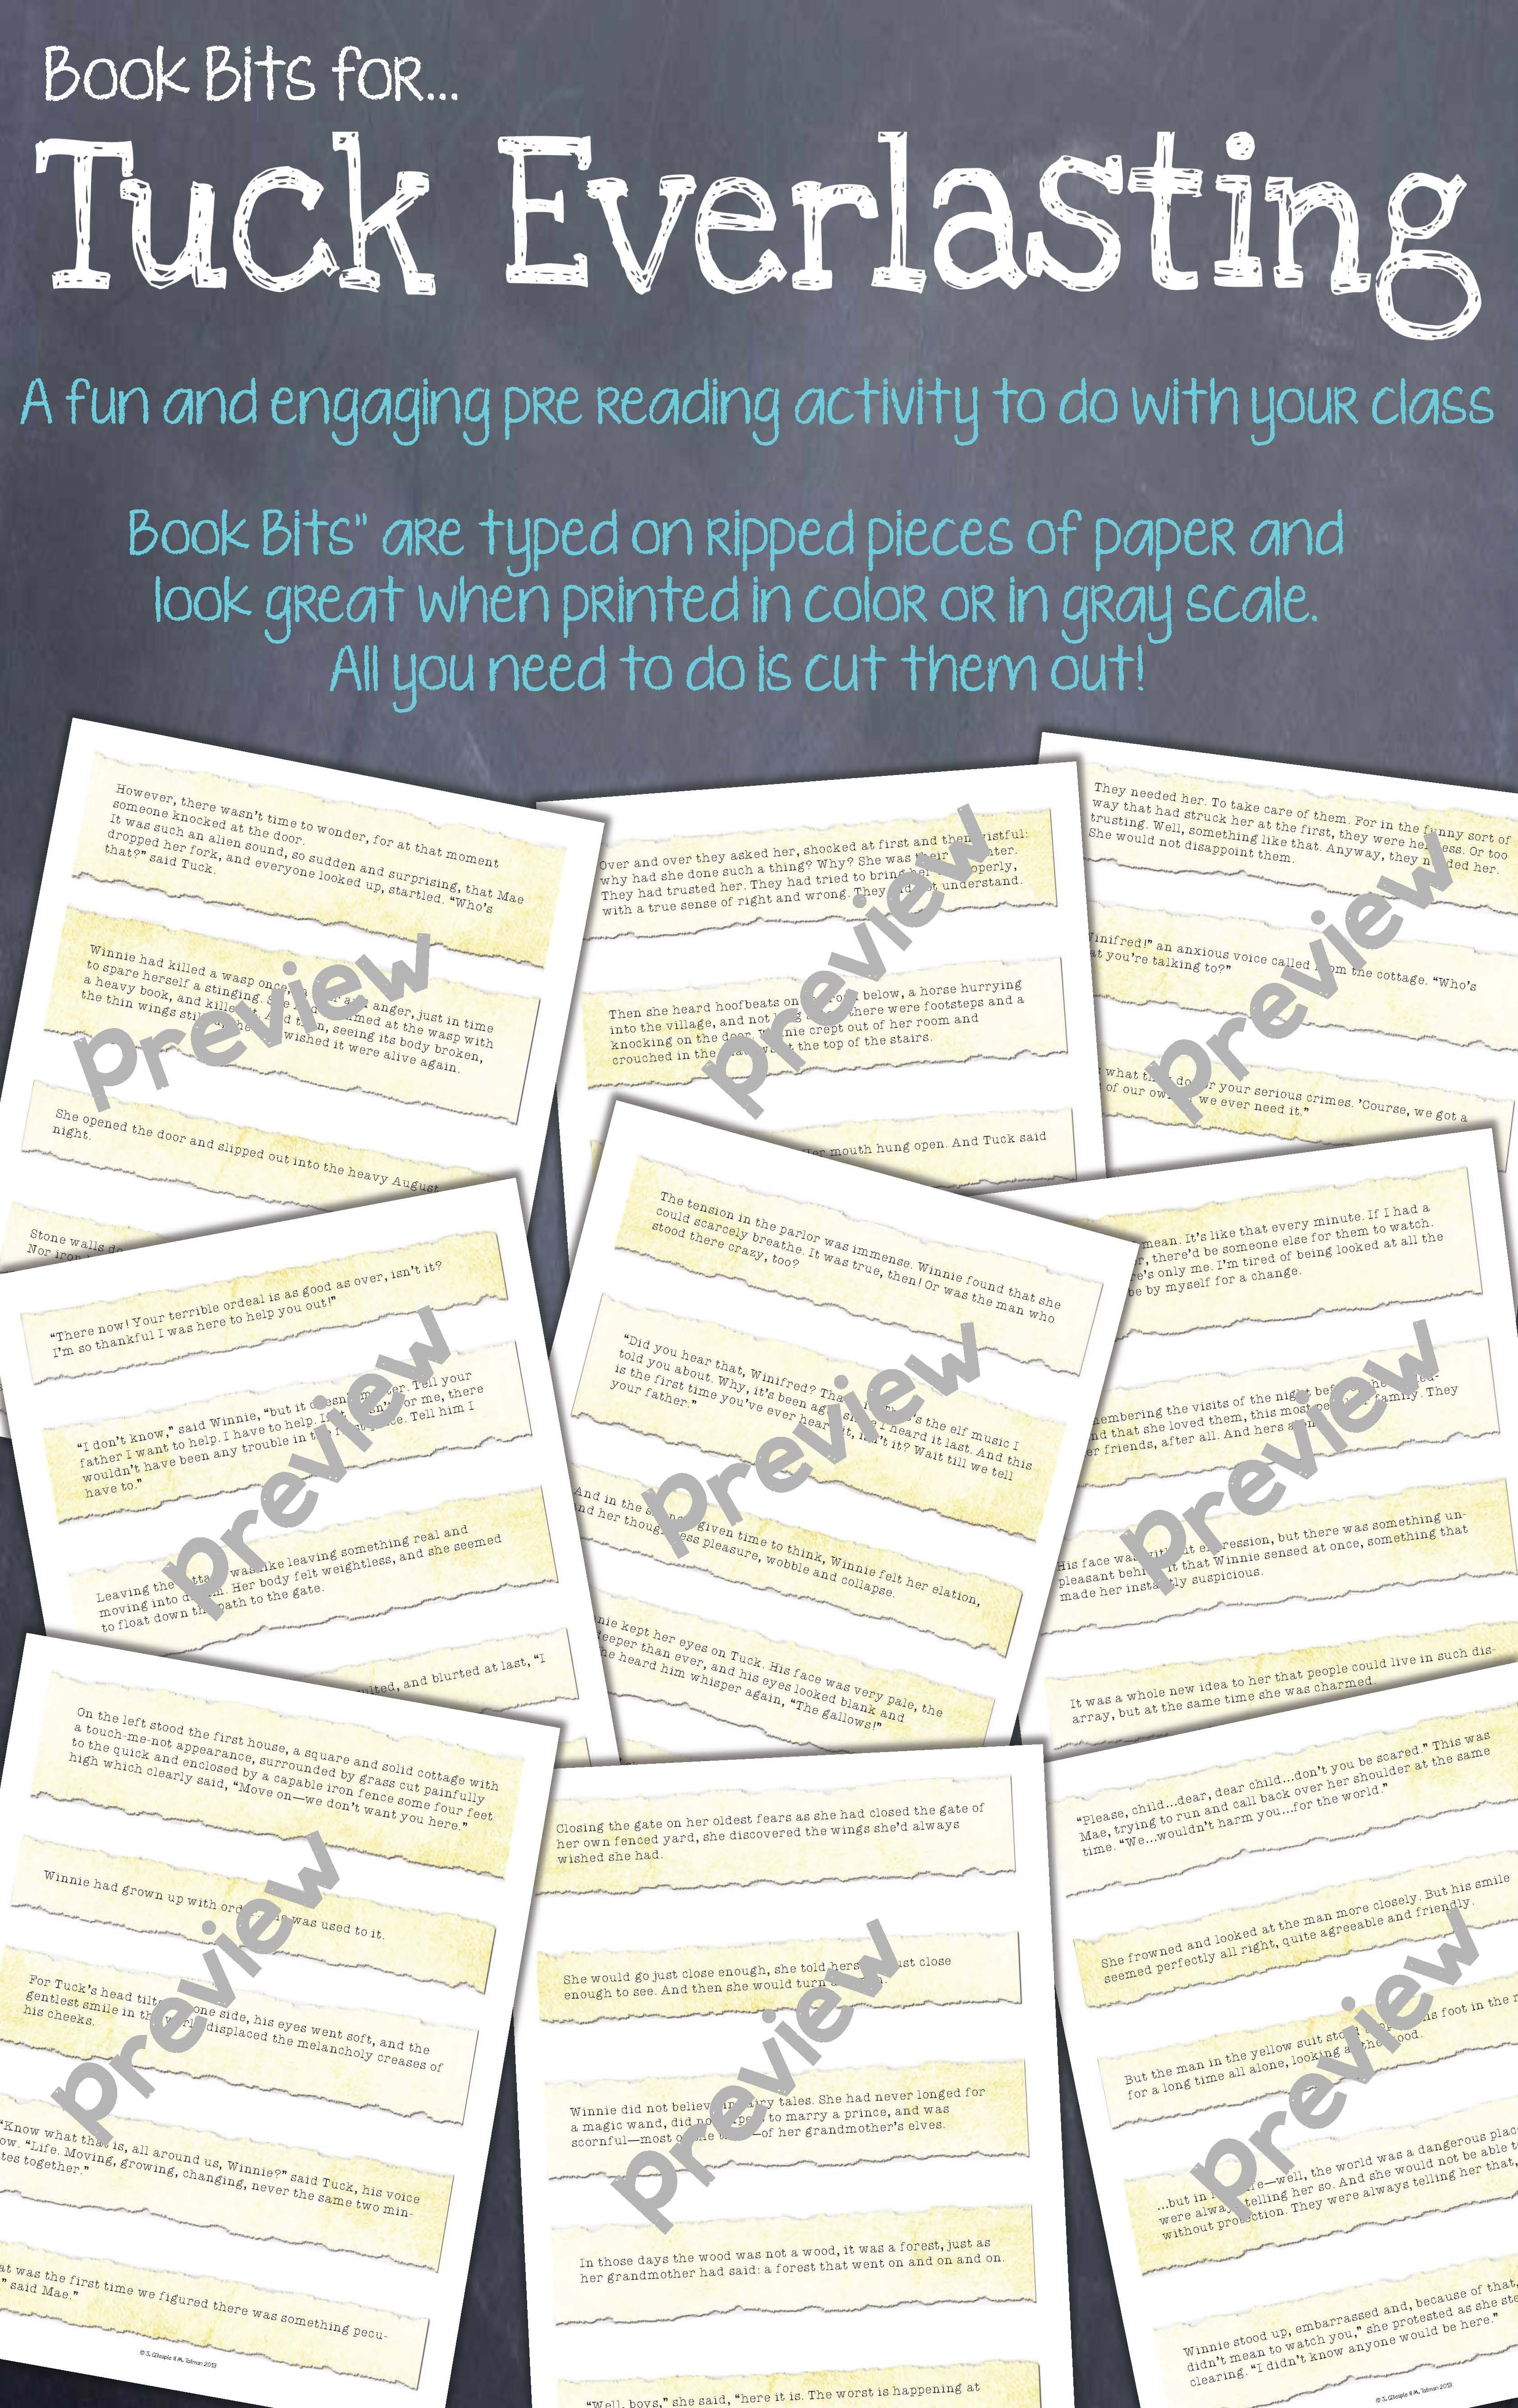 Book Bits A Fun Pre Reading Activity For Tuck Everlasting Pre Reading Activities Elementary Reading Comprehension Tuck Everlasting